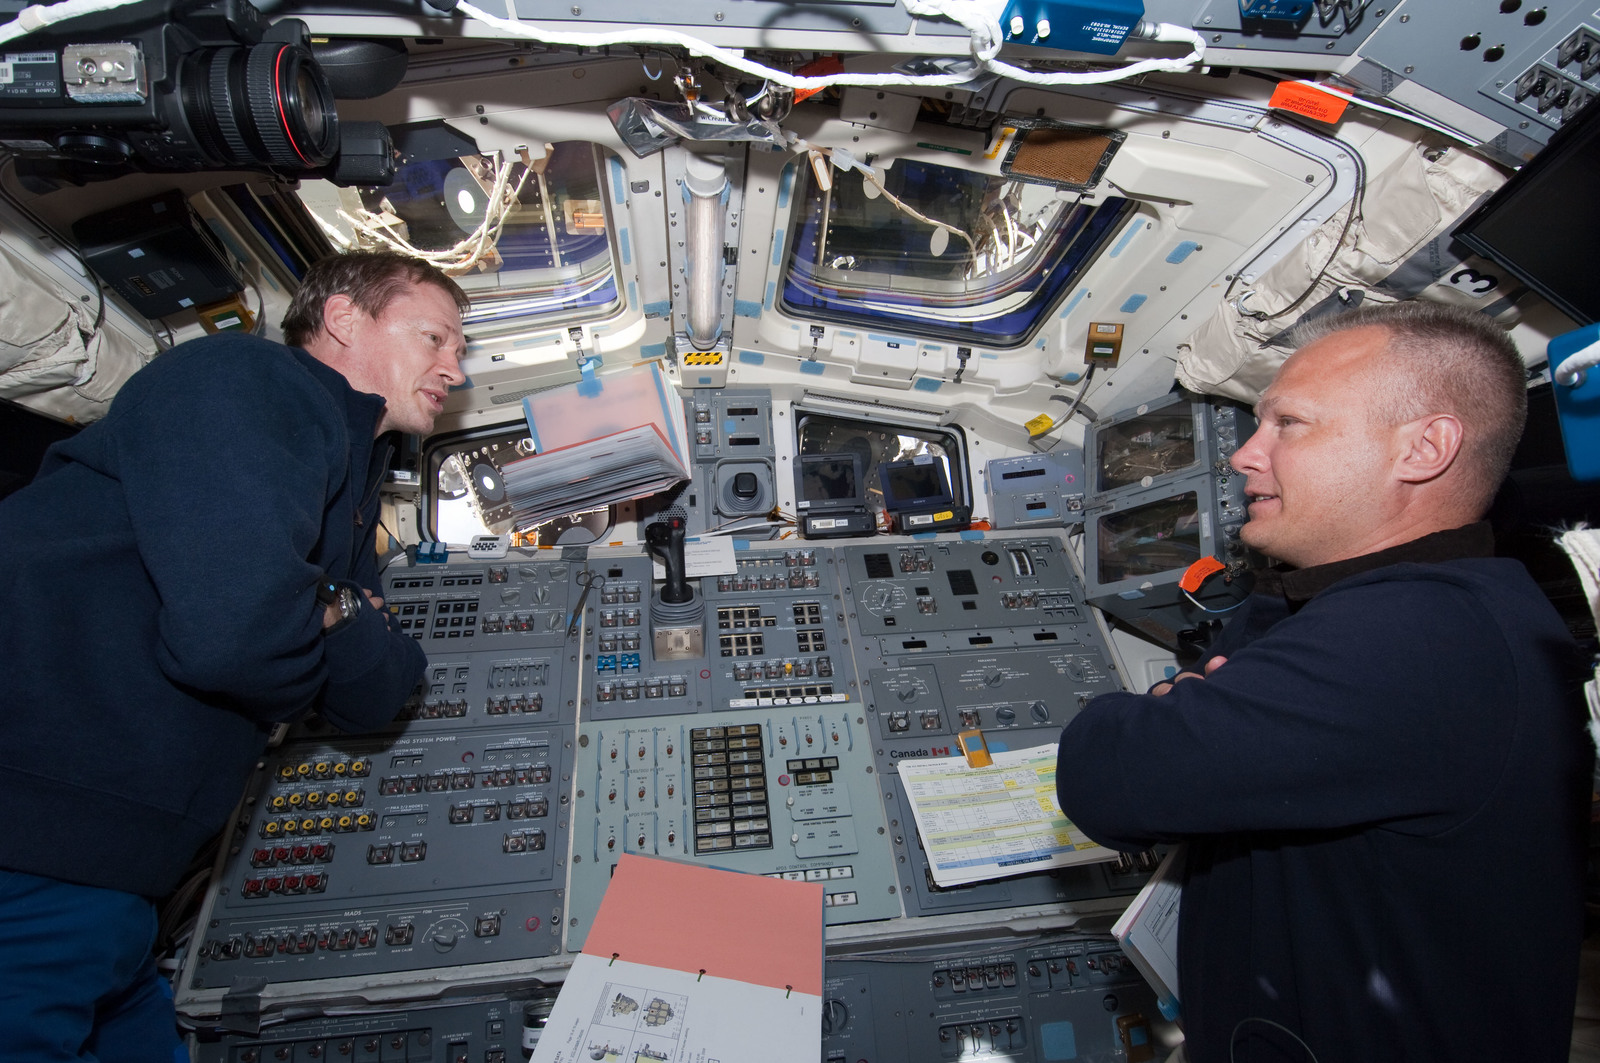 S127E006938 - STS-127 - De Winne and Hurley in the aft FD during STS-127 / Expedition 20 Joint Operations